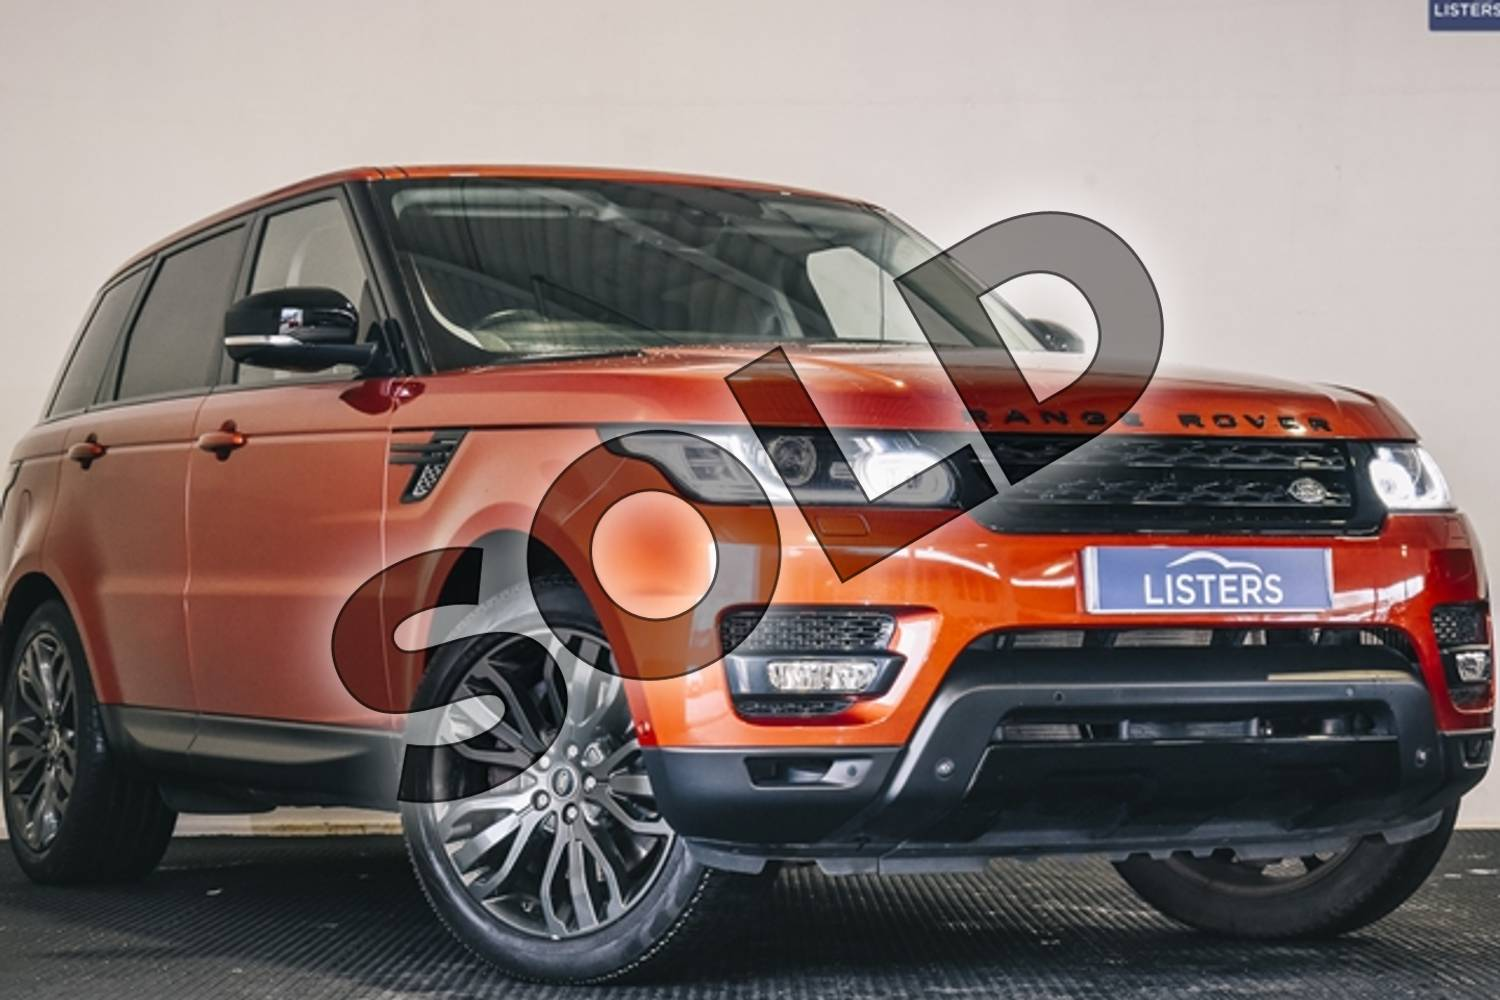 2013 Range Rover Sport Diesel Estate 3.0 SDV6 HSE Dynamic 5dr Auto in Premium metallic - Chile at Listers U Stratford-upon-Avon